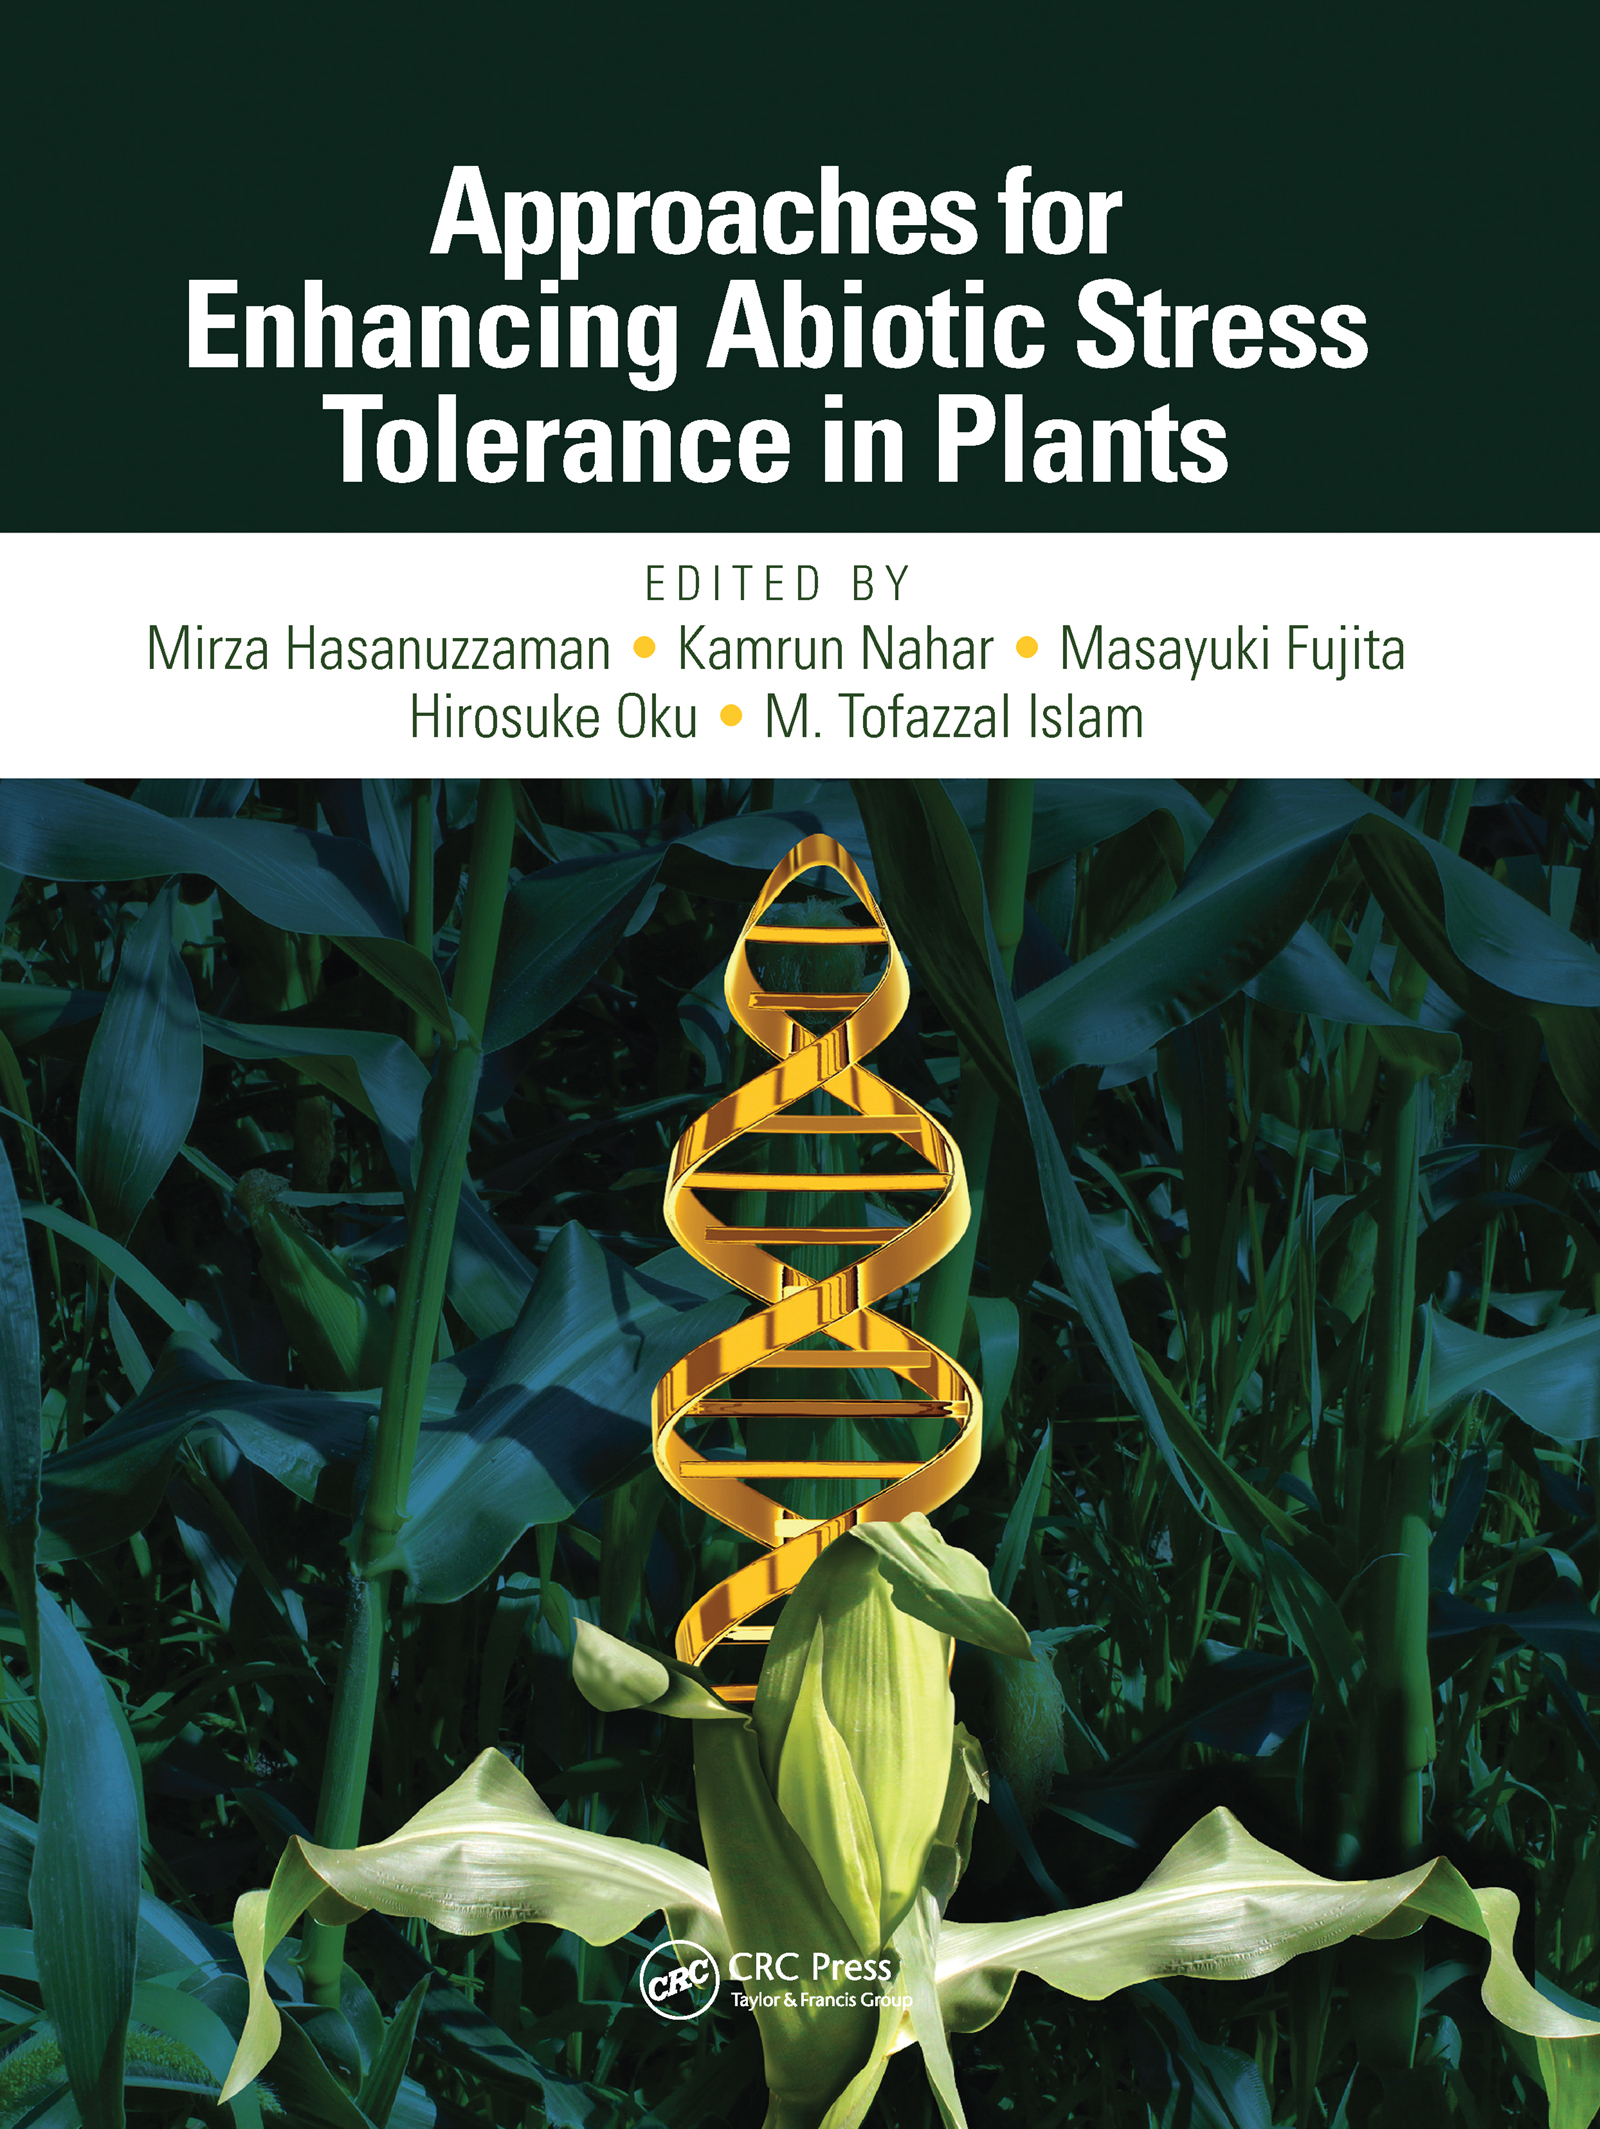 Approaches for Enhancing Abiotic Stress Tolerance in Plants